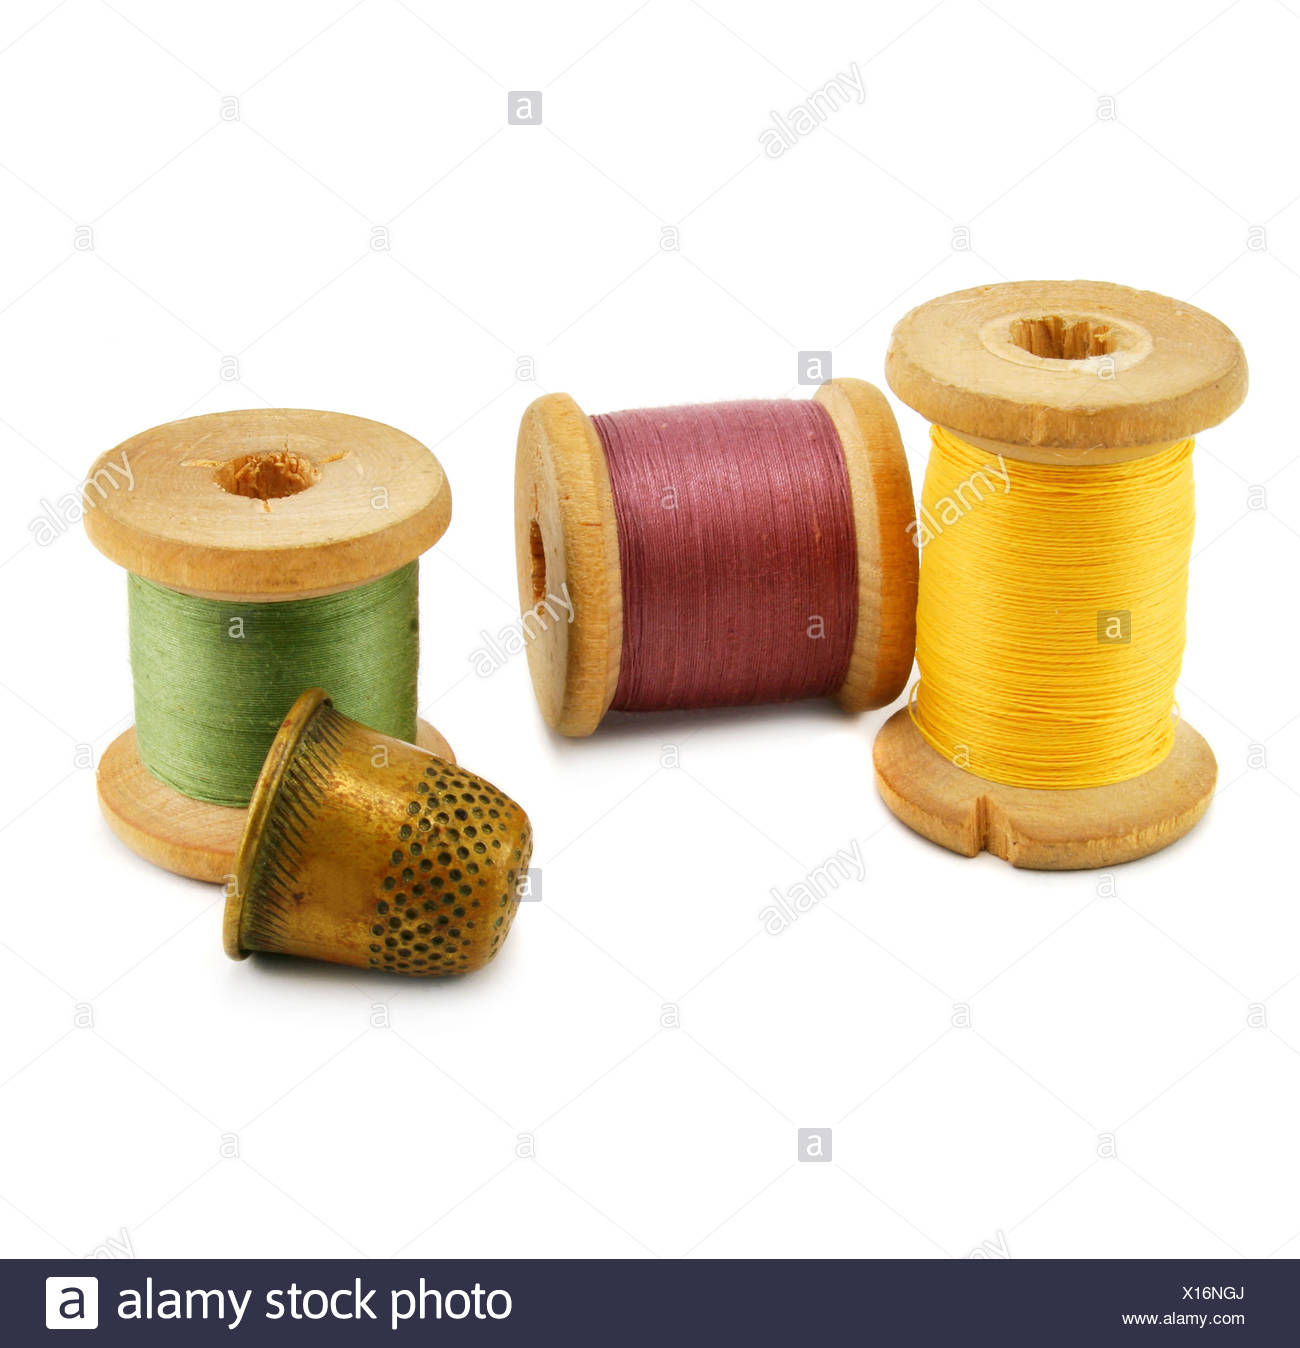 Spools of thread and thimble - Stock Image